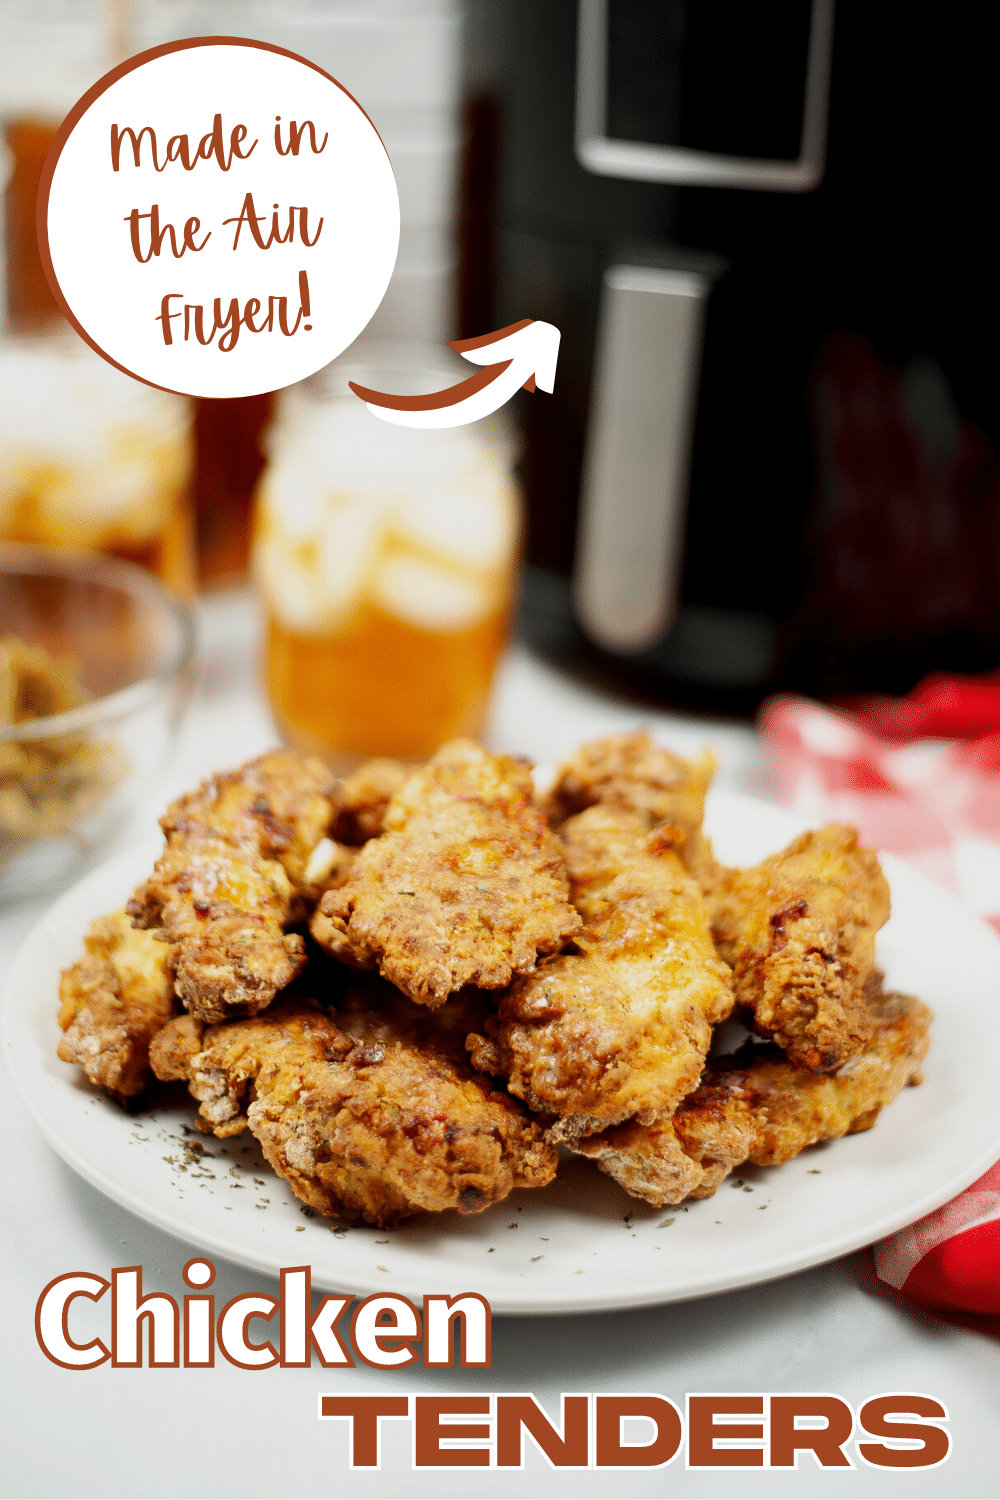 Air Fryer chicken tenders are crispy on the outside and juicy on the inside. You'll never want to eat fried chicken again! #airfryer #chickentenders #chicken #recipe via @wondermomwannab